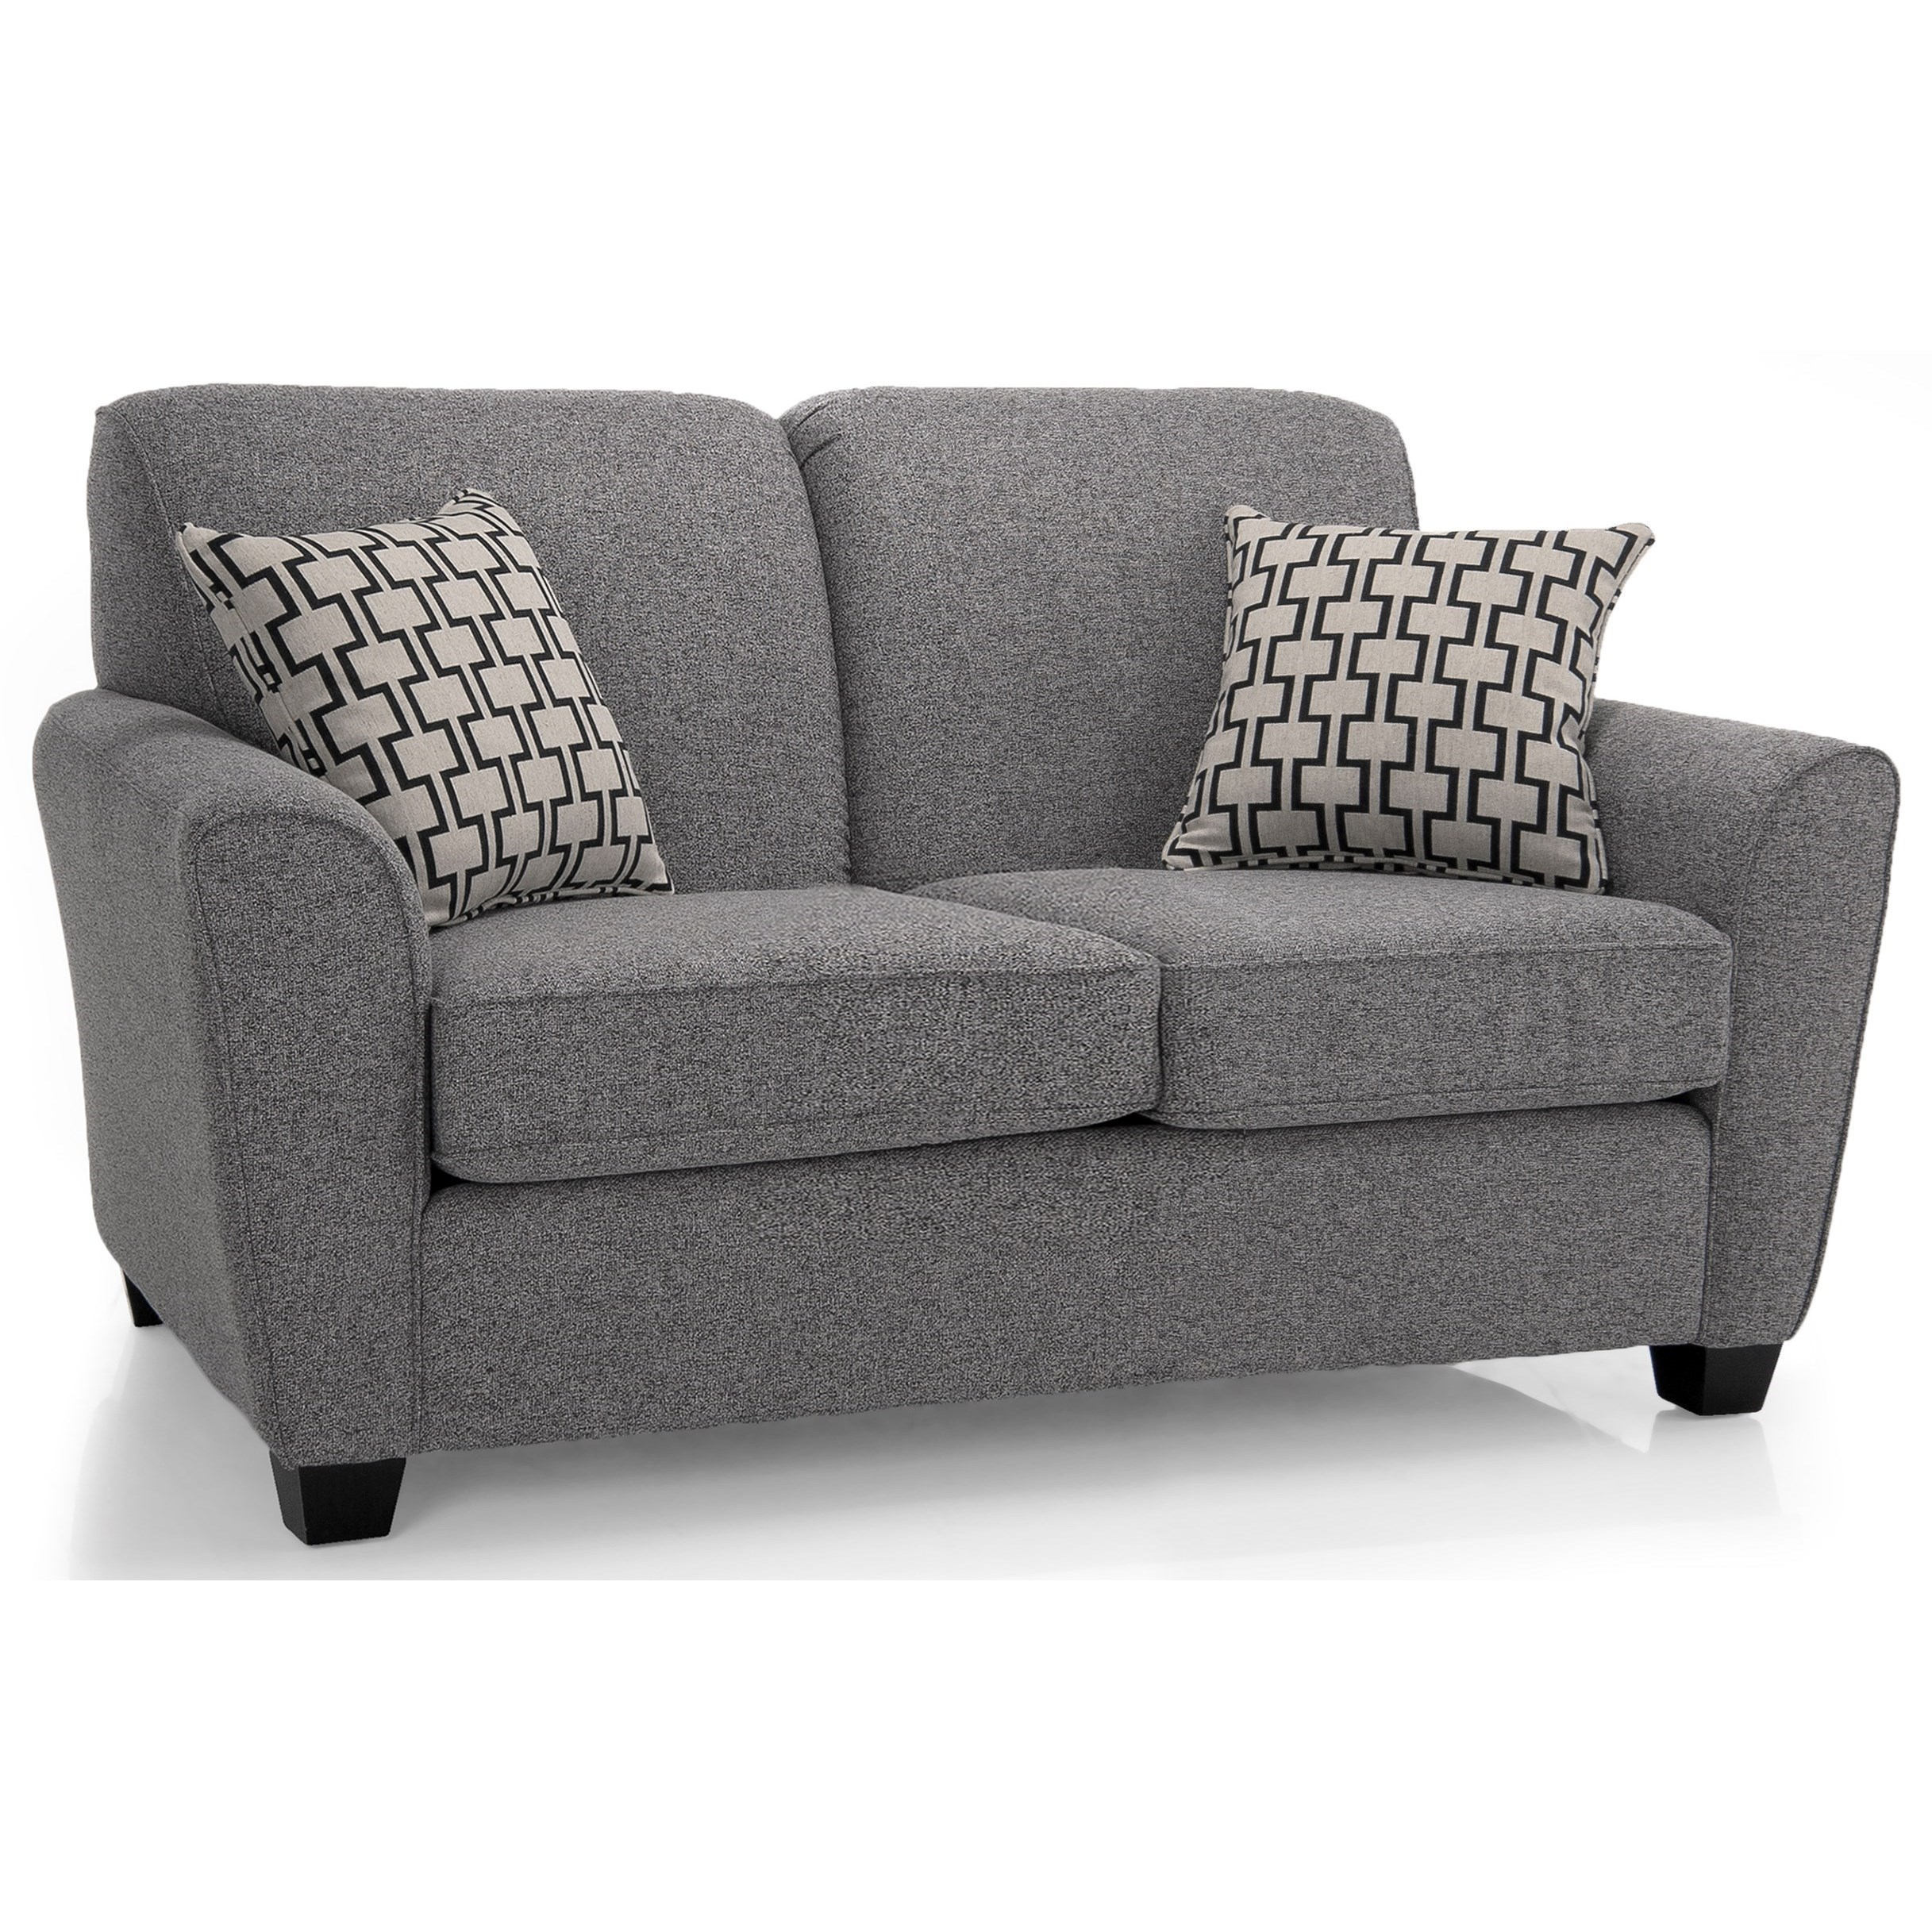 2404 Transitional Loveseat by Decor-Rest at Catalog Outlet